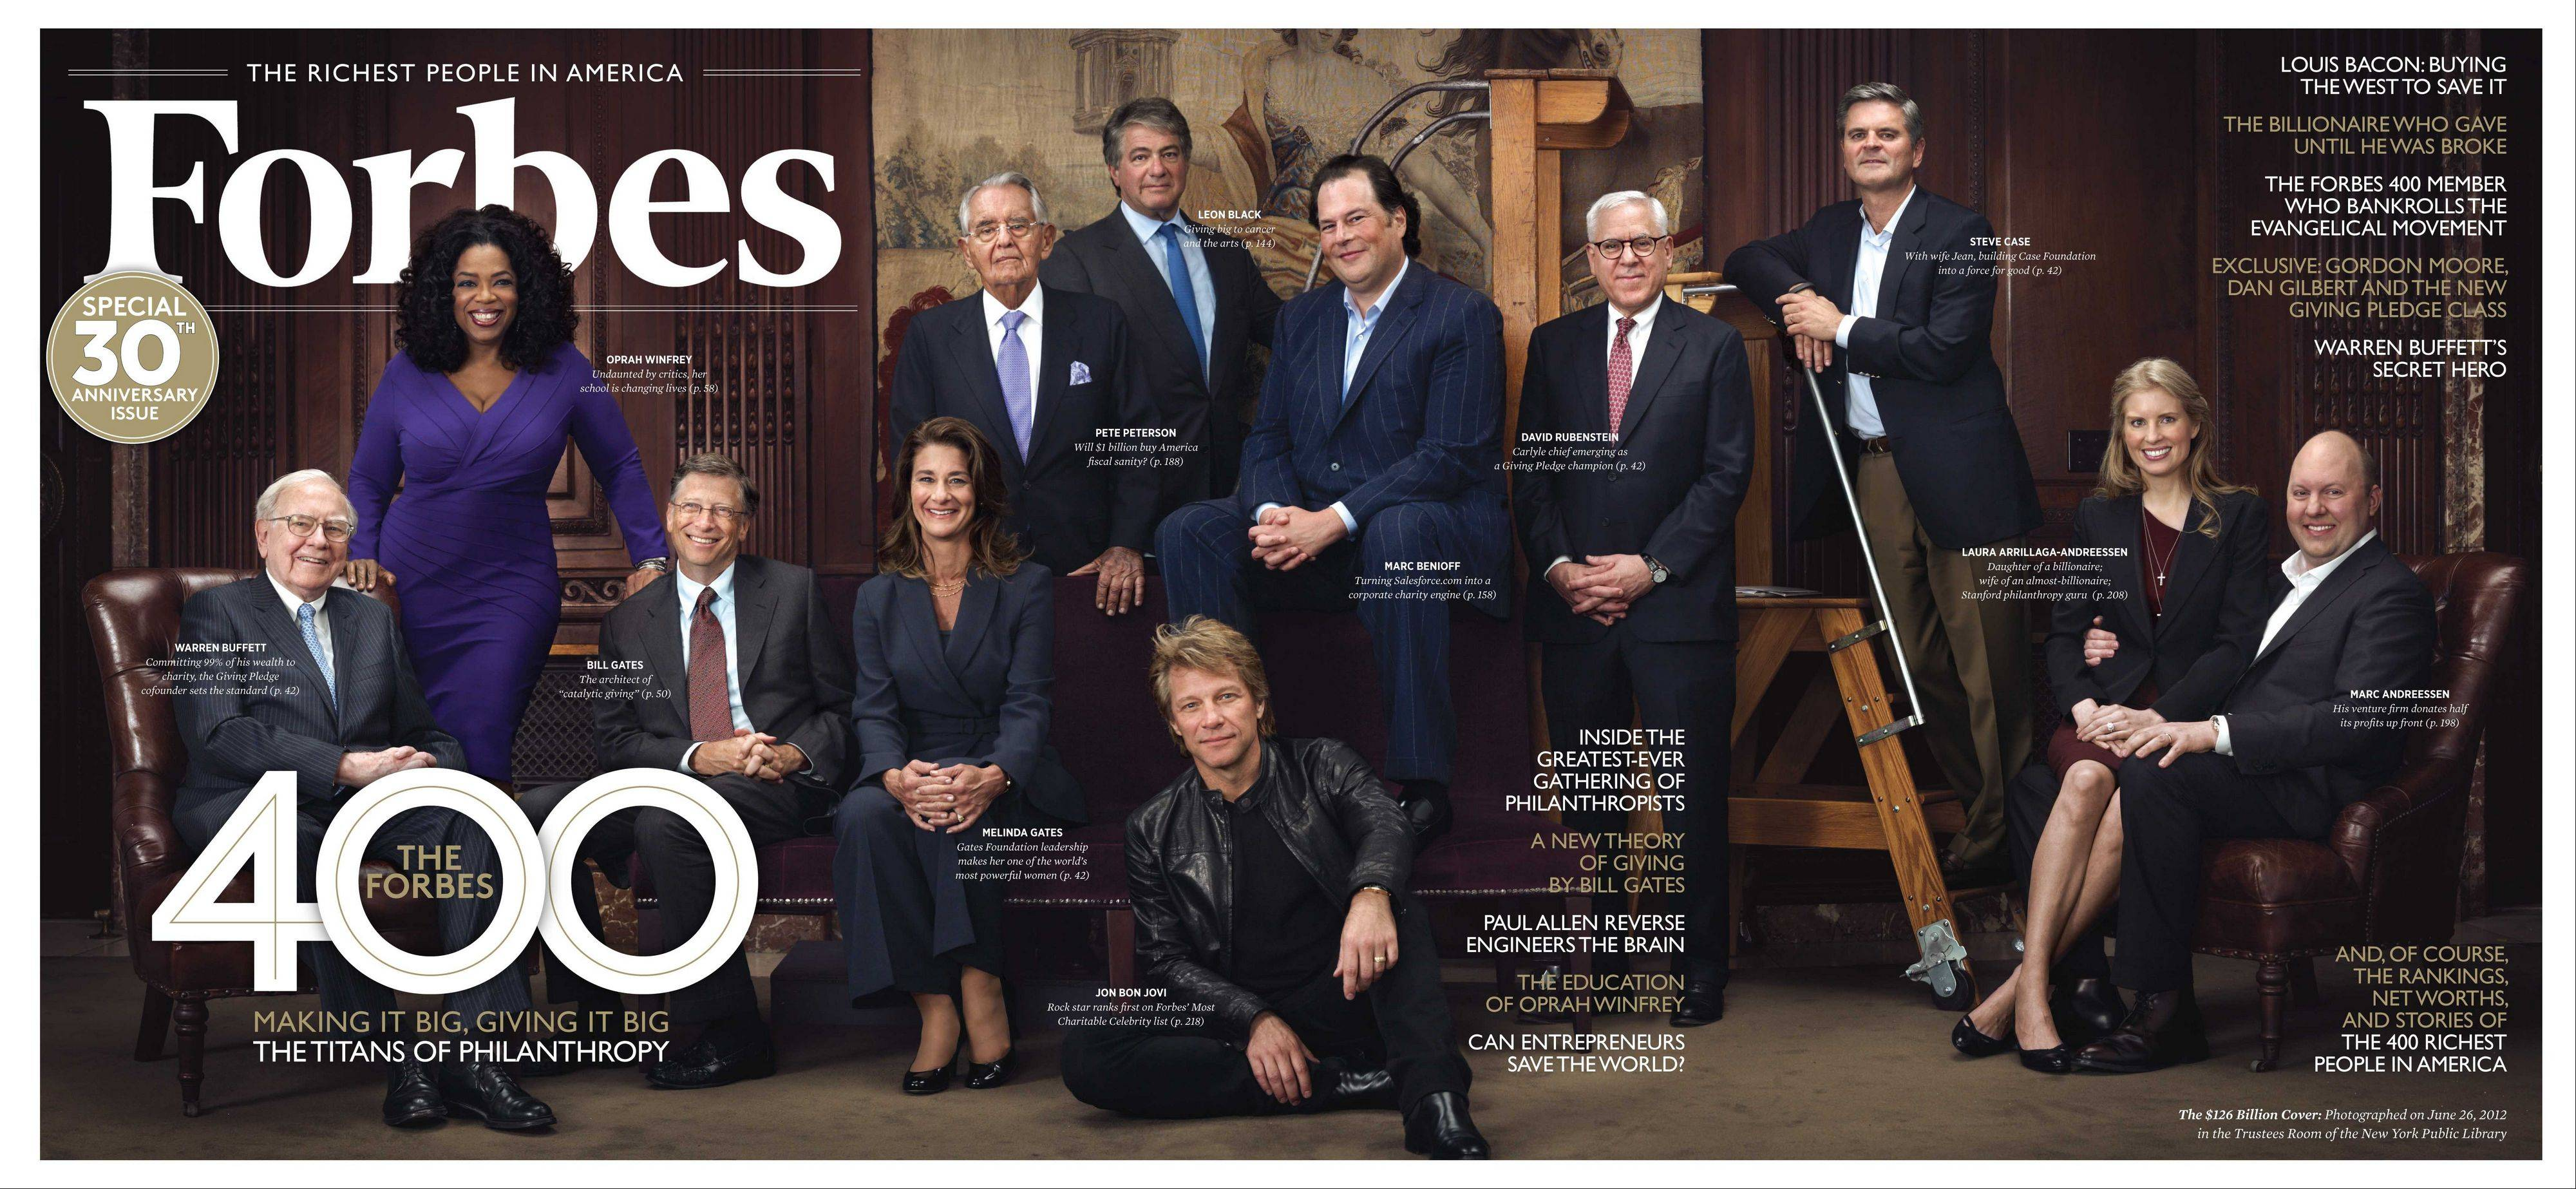 Forbes Media, which is controlled by the Forbes family, includes Forbes magazine, which has covered wealth and finance since 1917.